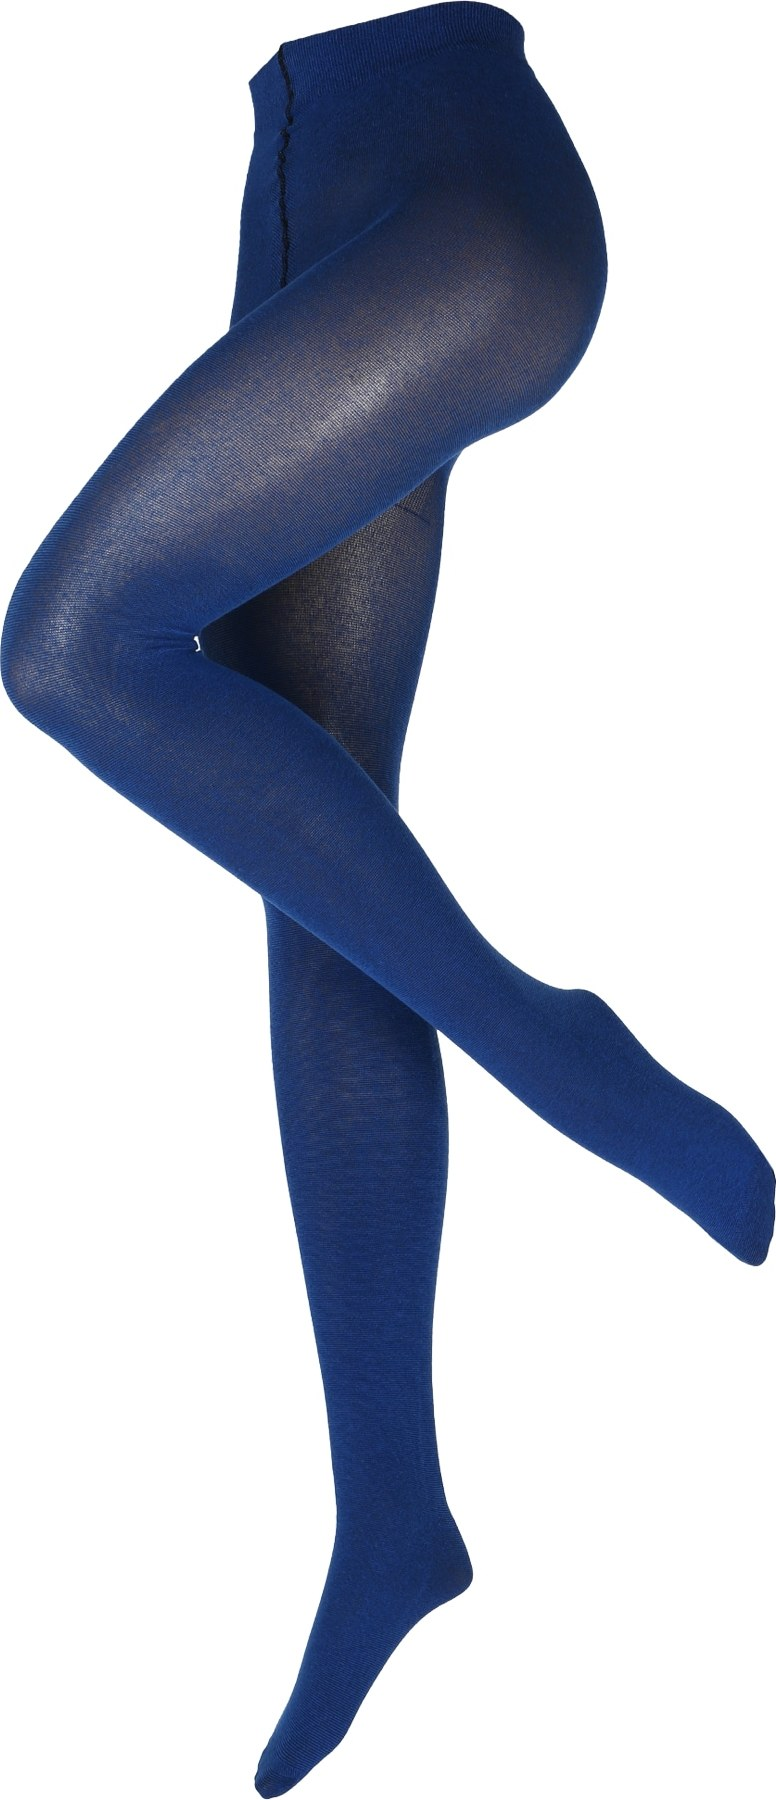 Punčocháče Polly tights Sea Blue modrá Swedish Stockings